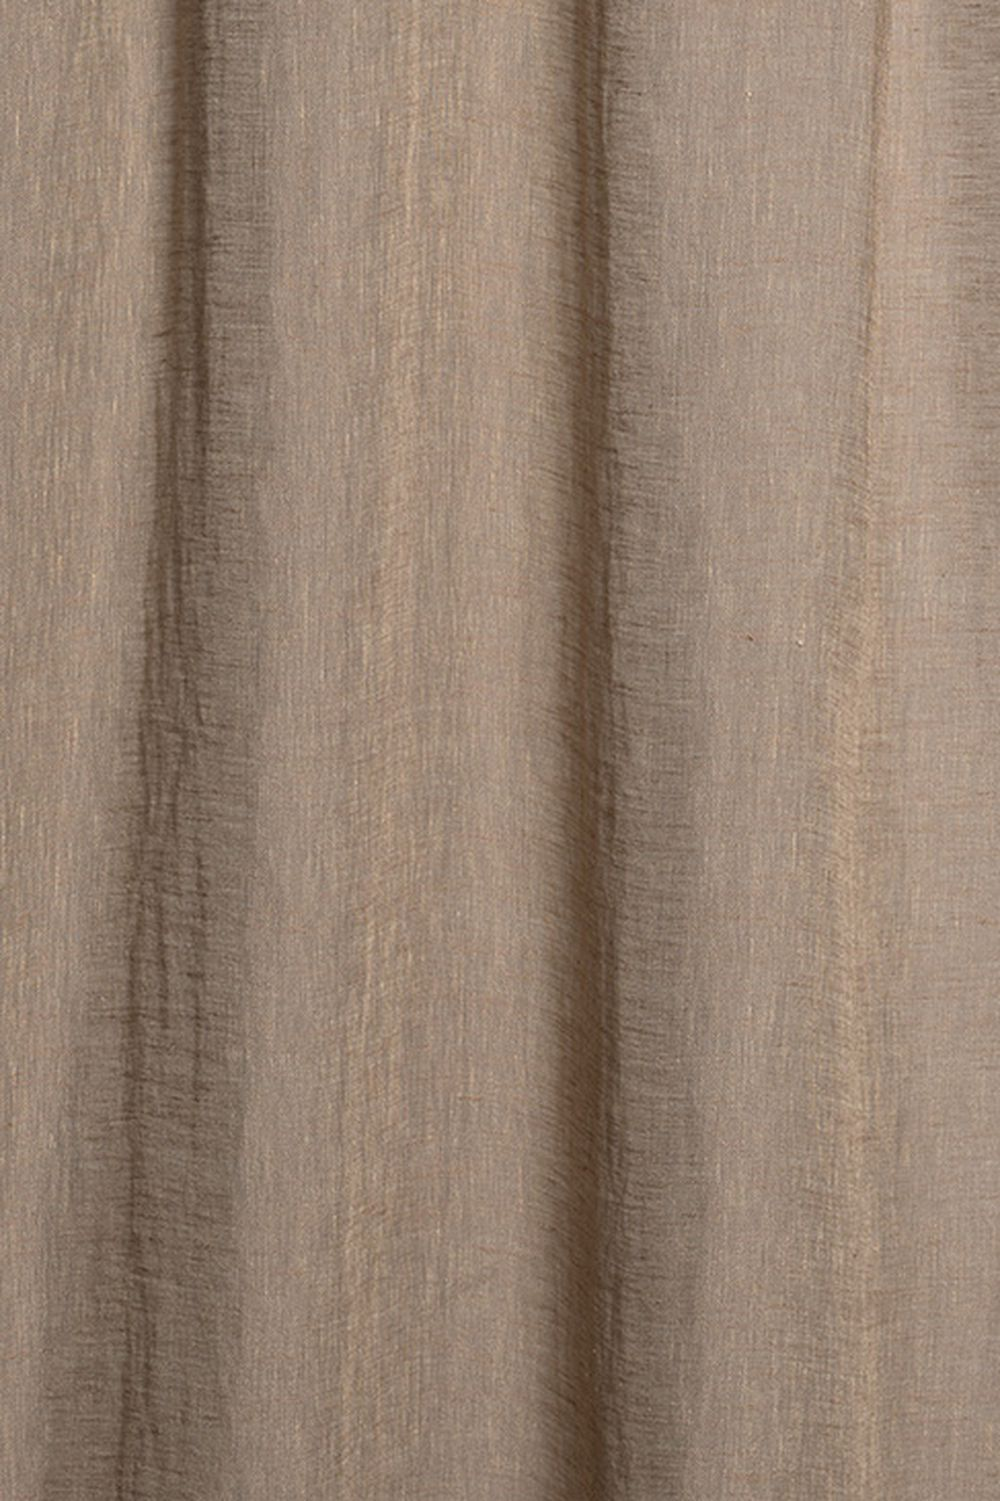 Photo of the fabric Laconia Air Ballet swatch by James Dunlop. Use for Sheer Curtains. Style of Plain, Sheer